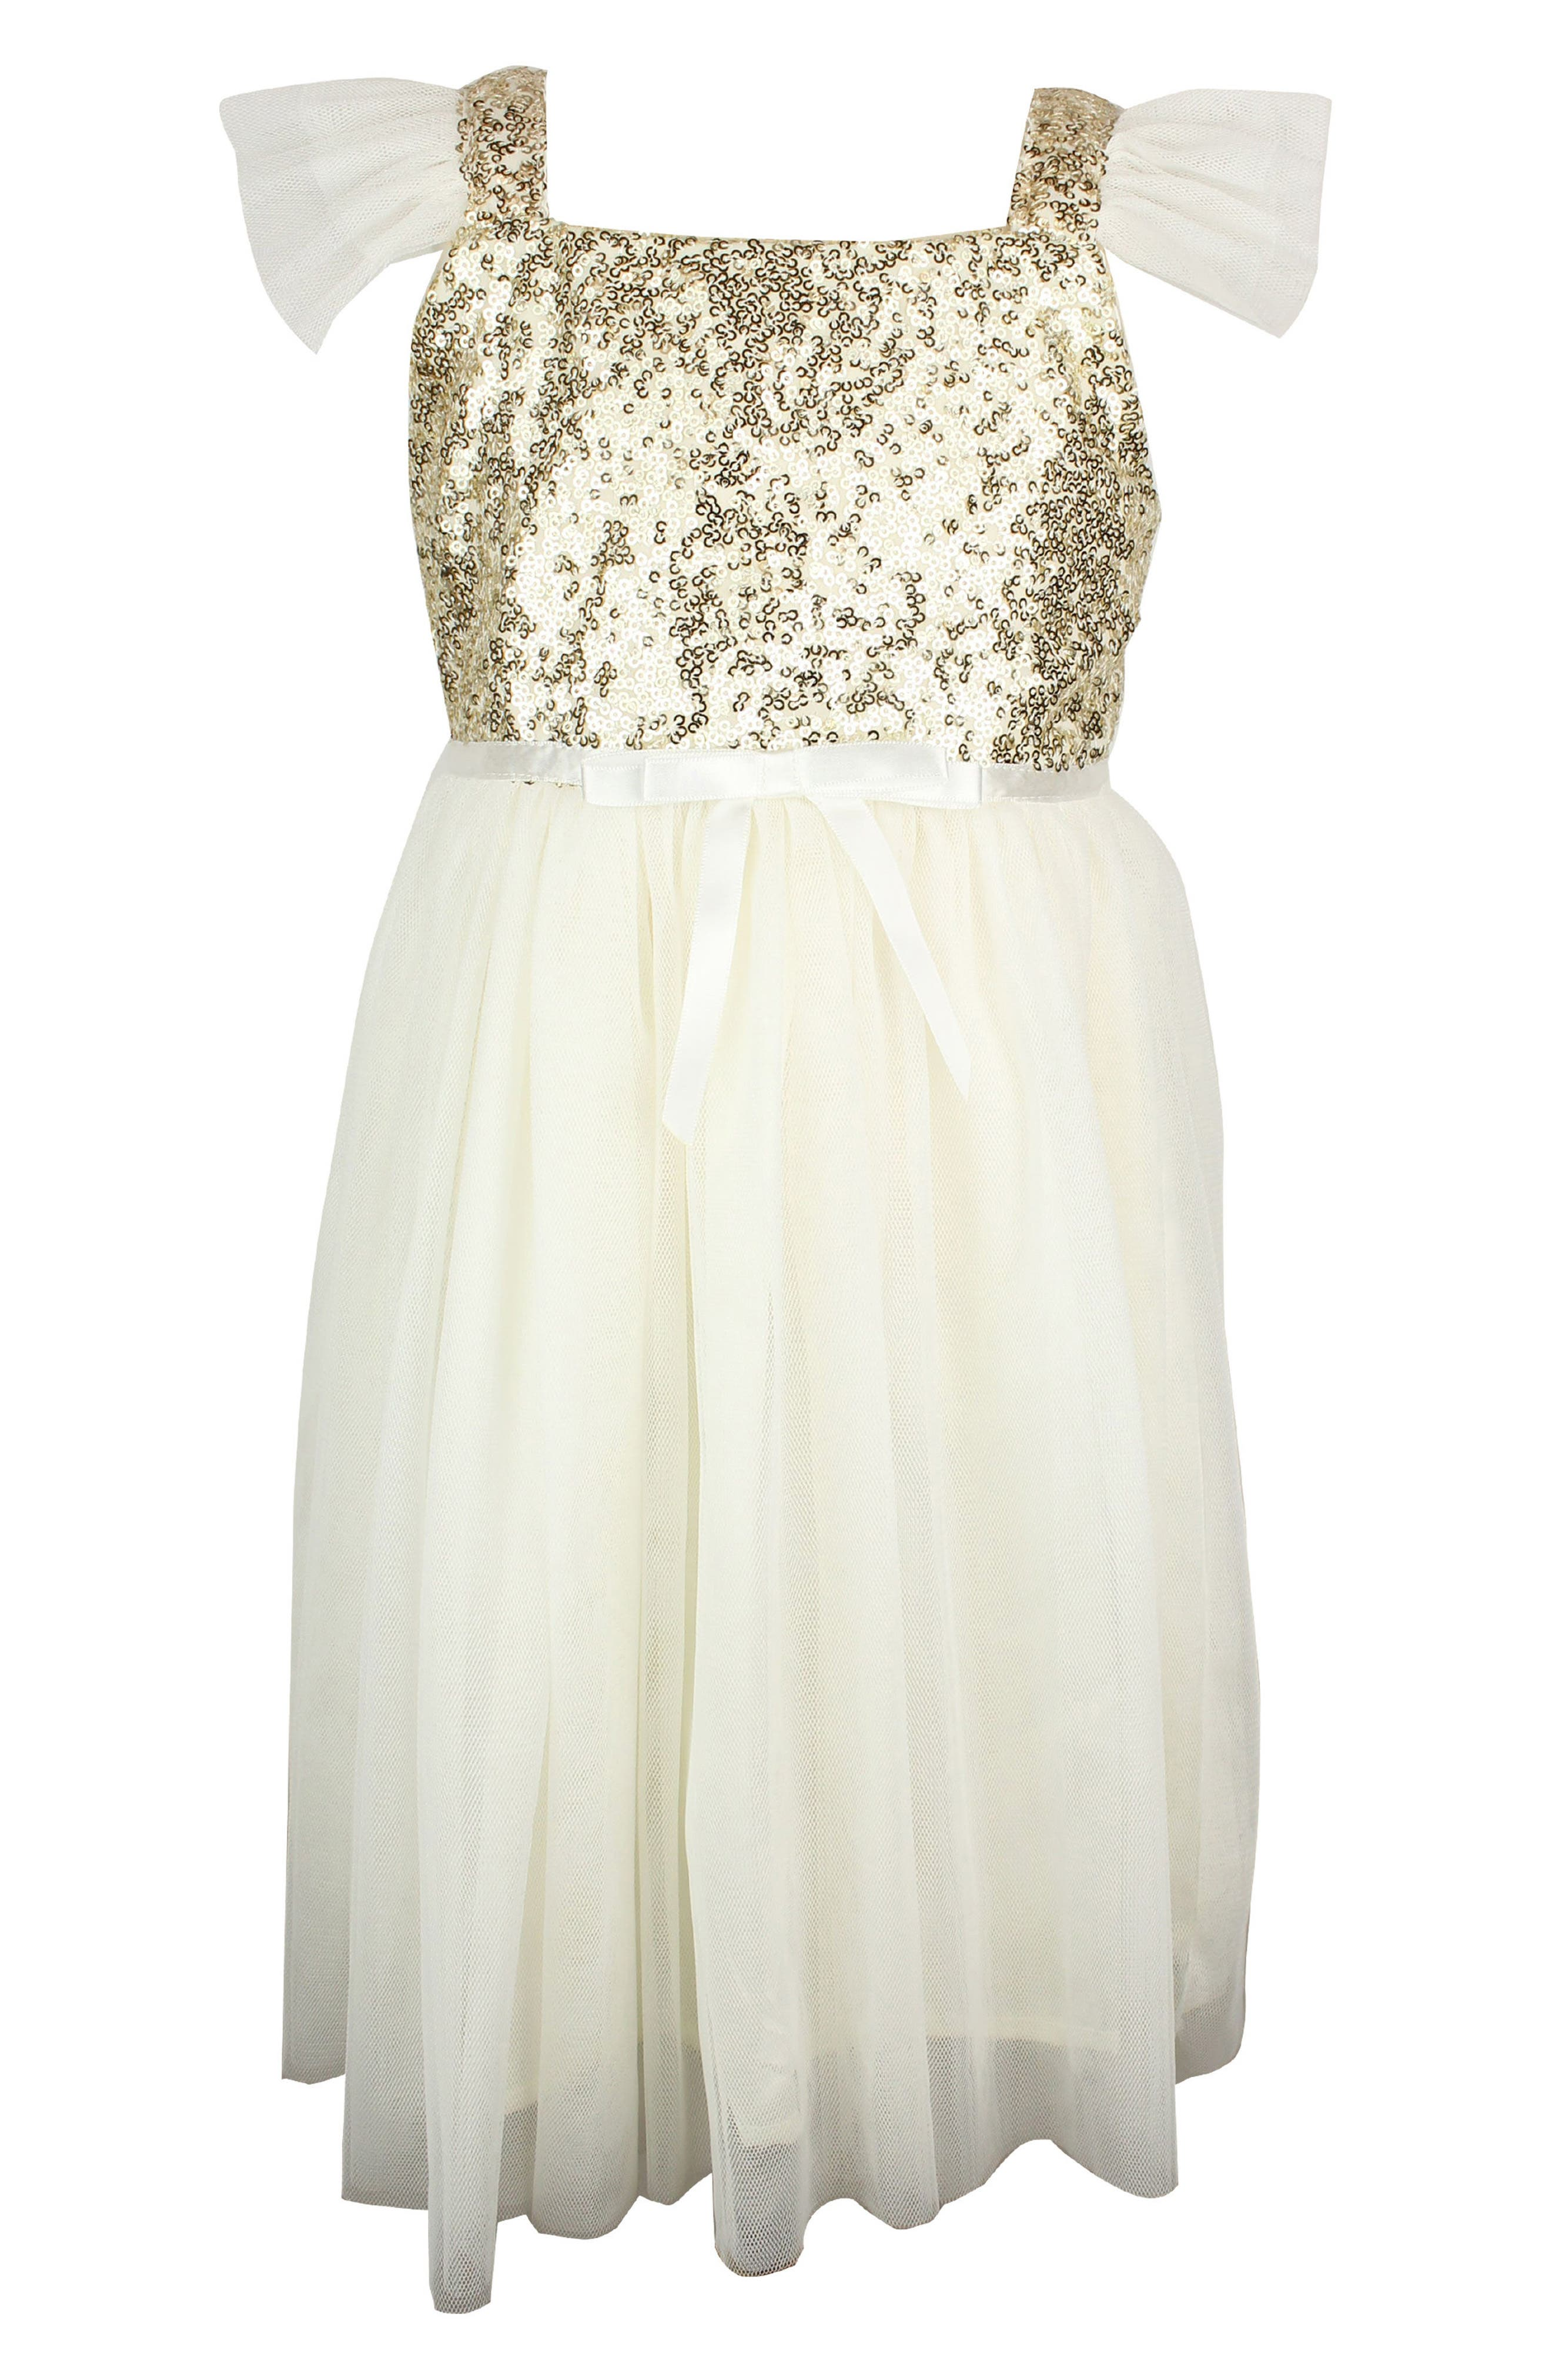 Sequin Bodice Tulle Dress,                             Main thumbnail 1, color,                             White/ Gold